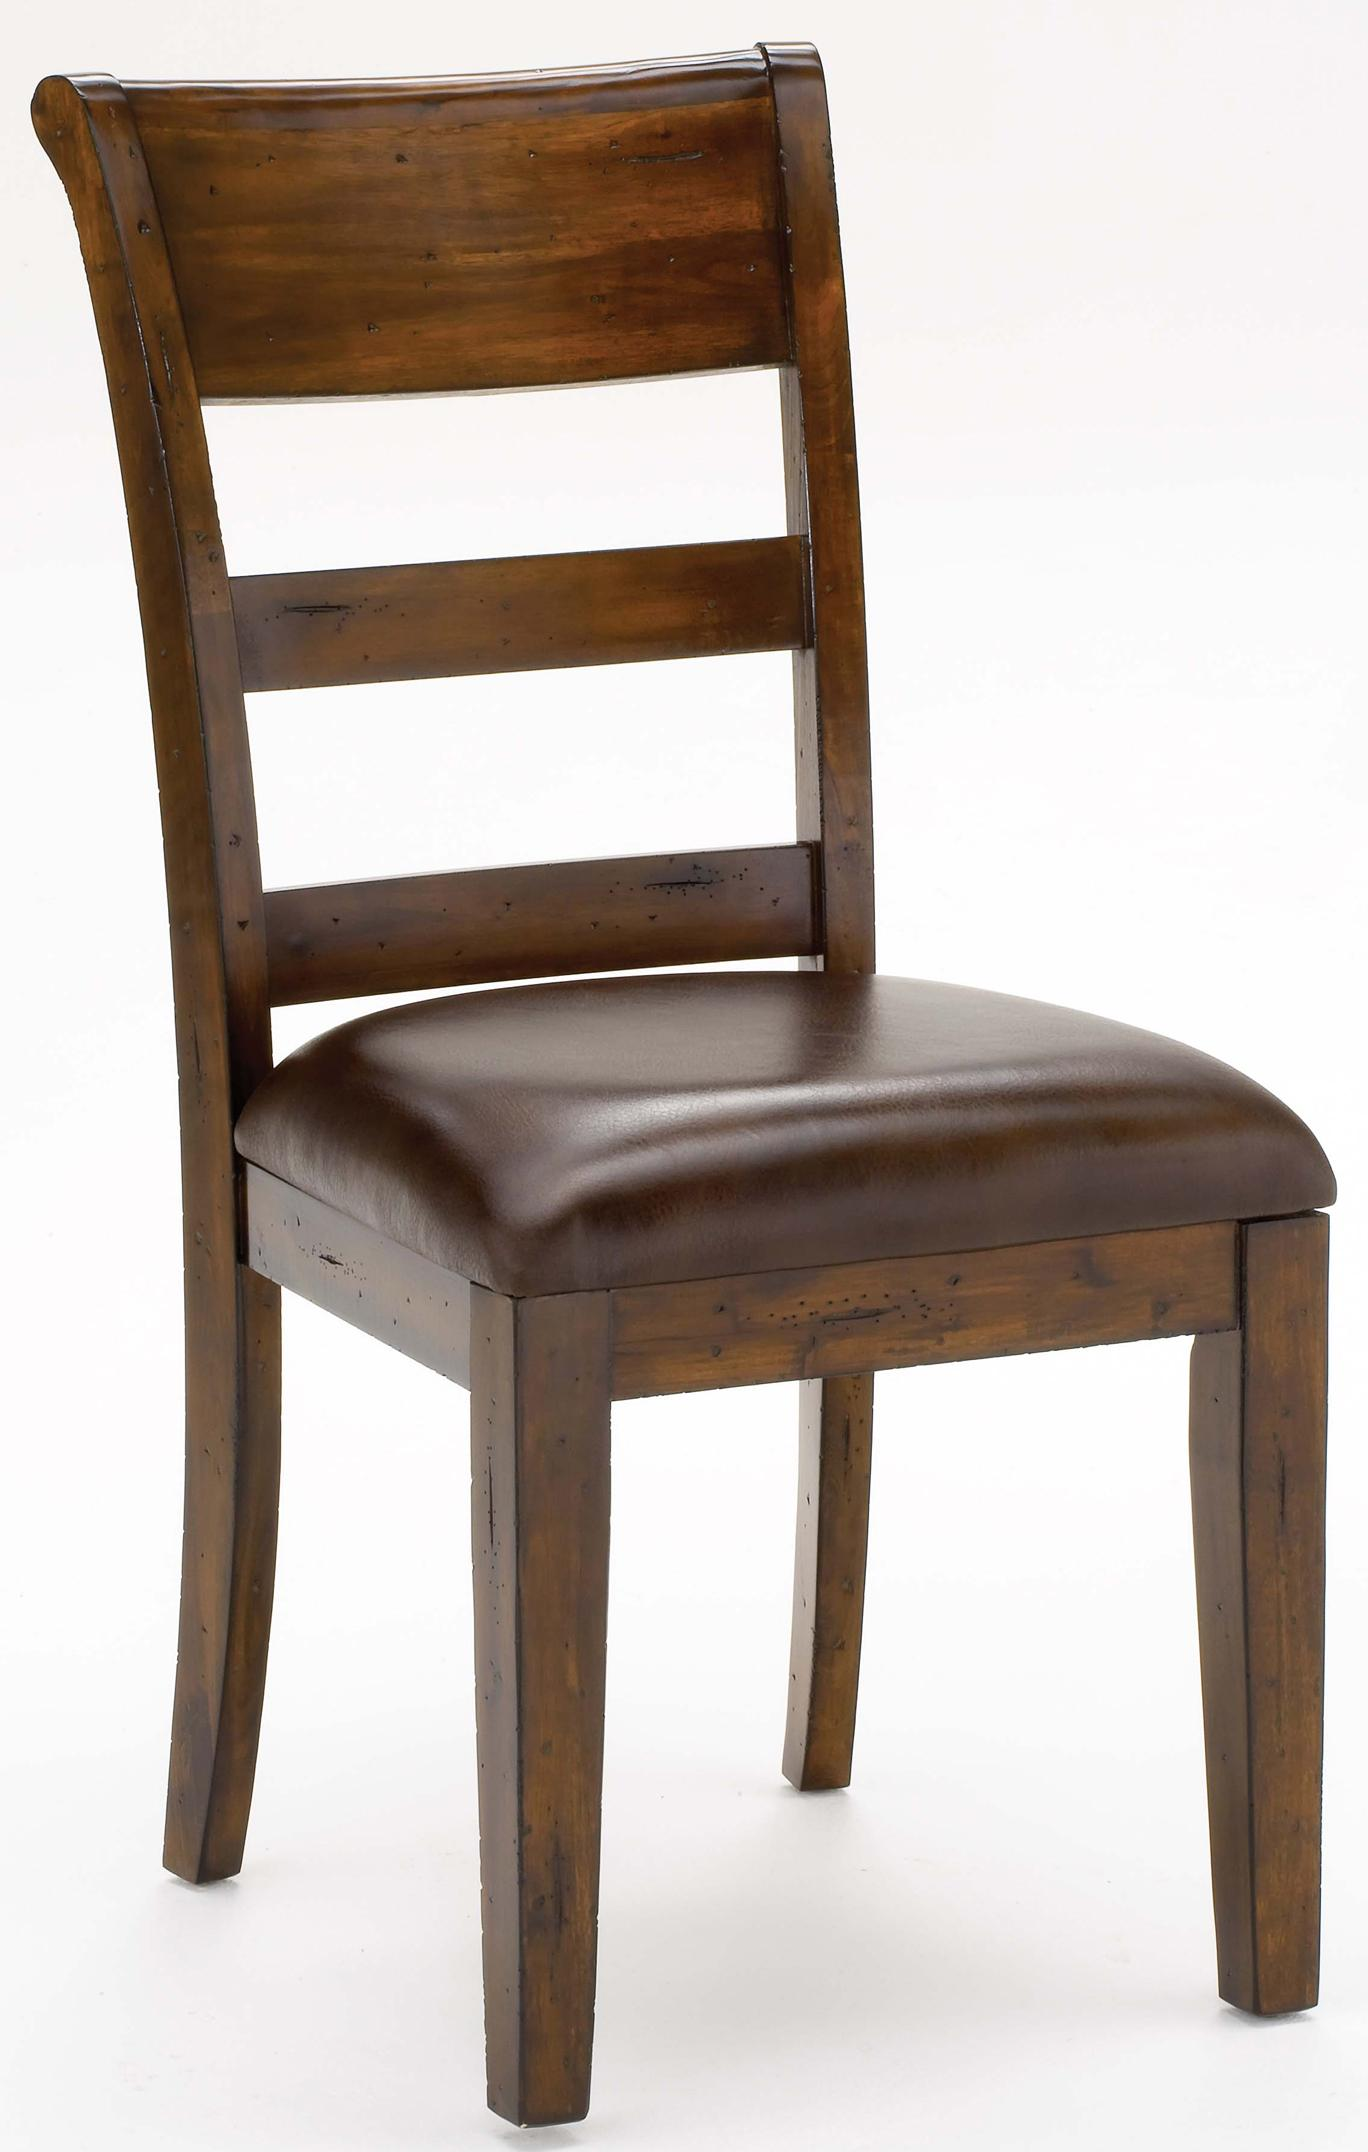 Hillsdale Park Avenue Dining Chairs - Item Number: 4692-802